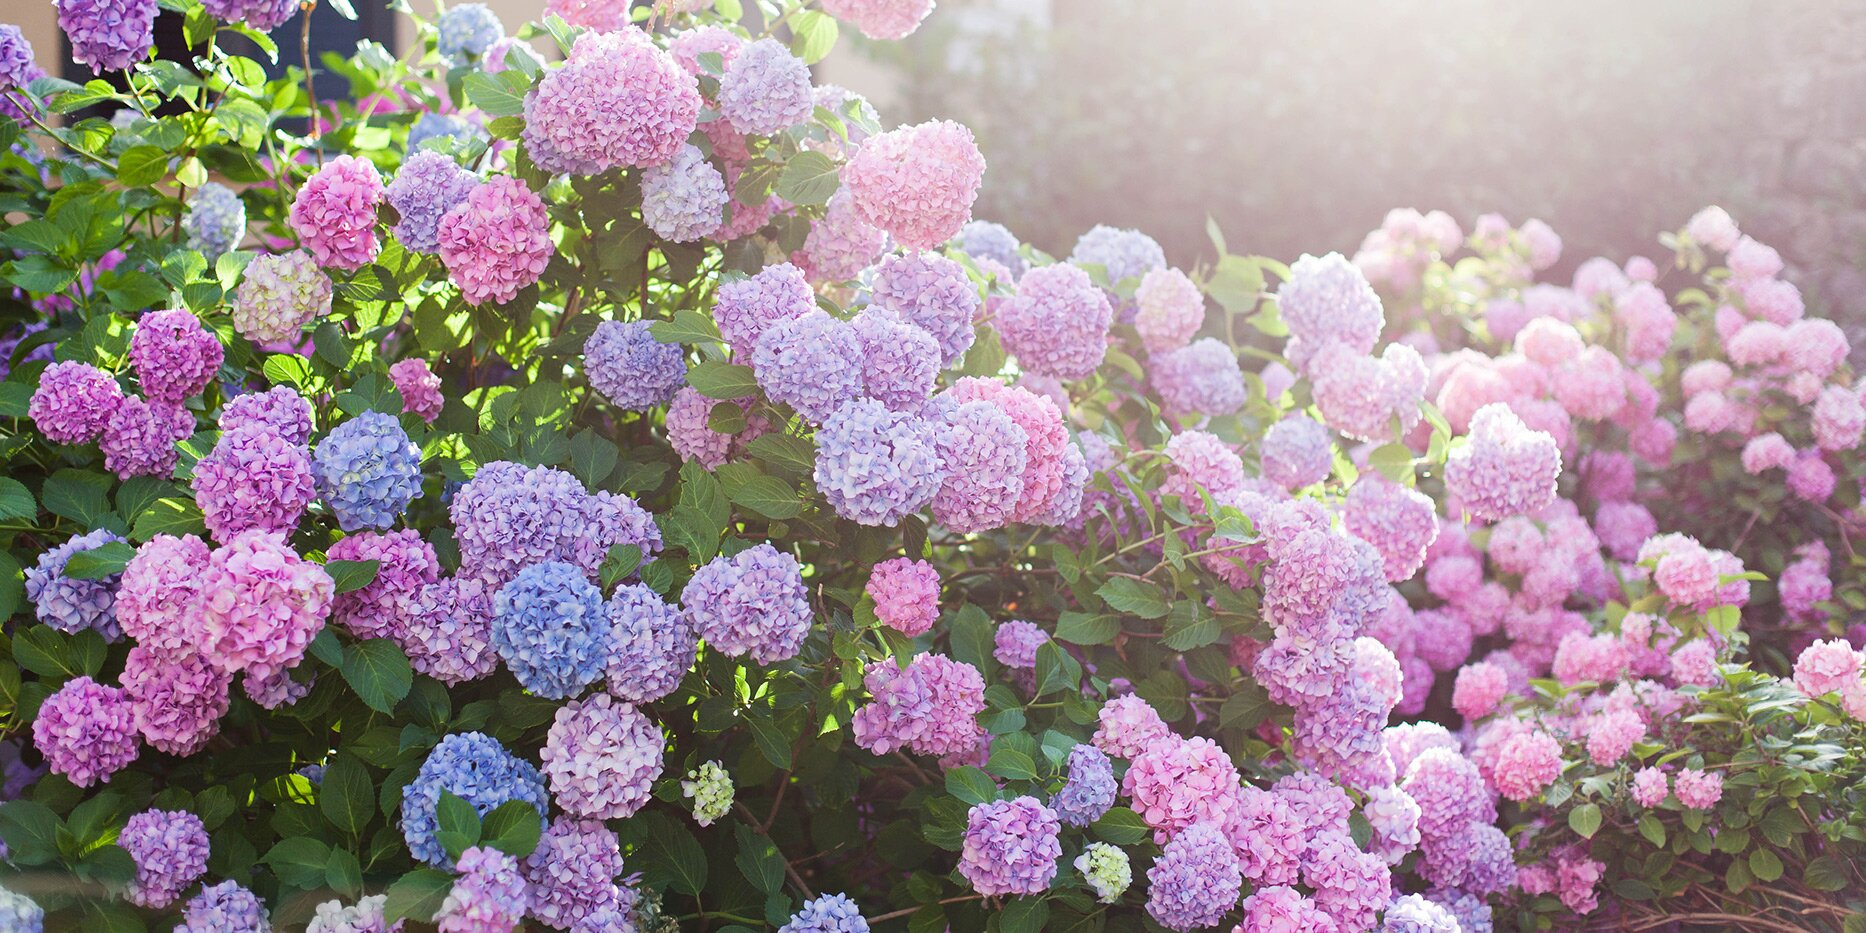 How to Choose the Right Type of Hydrangea for Your Garden